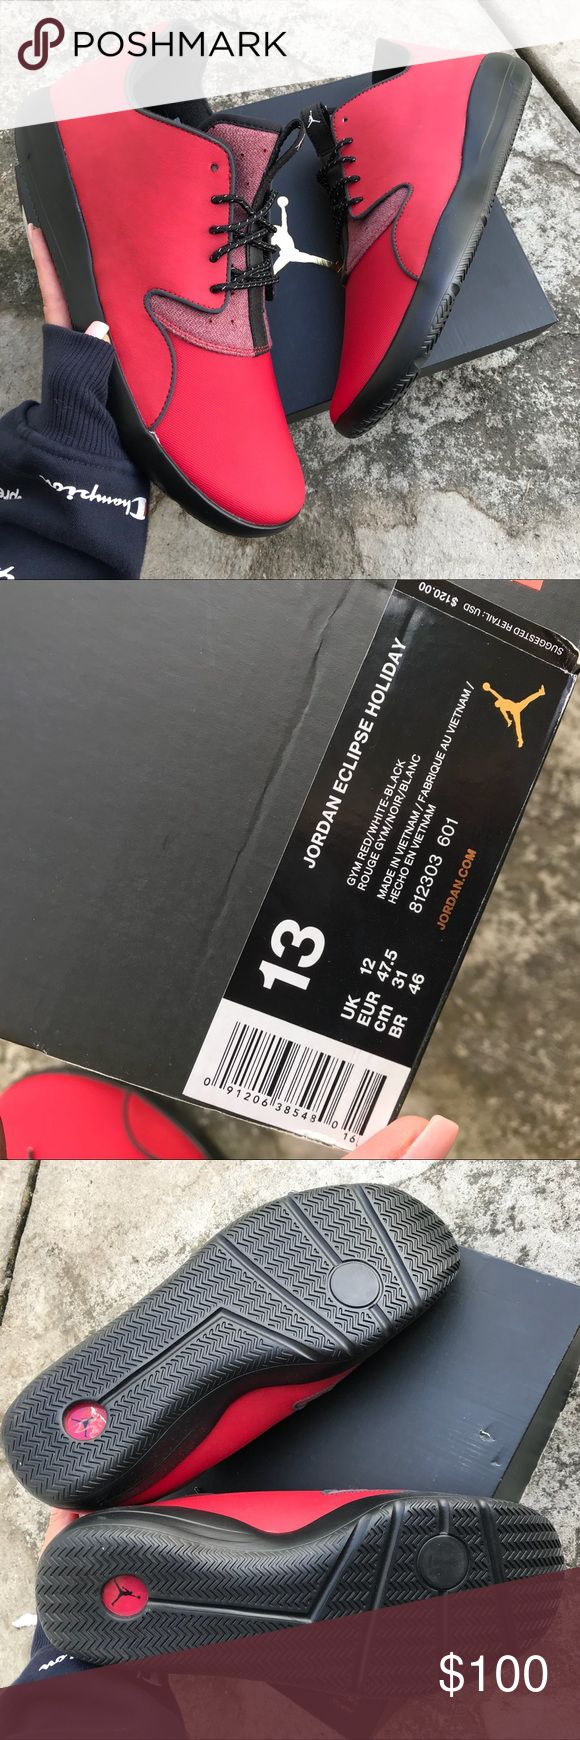 NEW 😍 NIKE JORDAN ECLIPSE SIZE 13 MEN   HOLIDAY IT'S NOT TOO EARLY TO GET IN THE SPIRIT WITH THESE HOLIDAY EDITION NIKE JORDAN ECLIPSE! ❤️☃️ New & never worn MENS SZ 13. Original Nike JORDAN BOX (no lid)! Textile & leather upper, blackout non marking sole! 🎁 ships same or next day from my smoke free home.   PRICE is FIRM, offers will be considered through the offer button only. Bundle items to save. ❤️✨ full retail $120.   Checkout all my NIKE listings. ⚡️100% authentic Nike product…